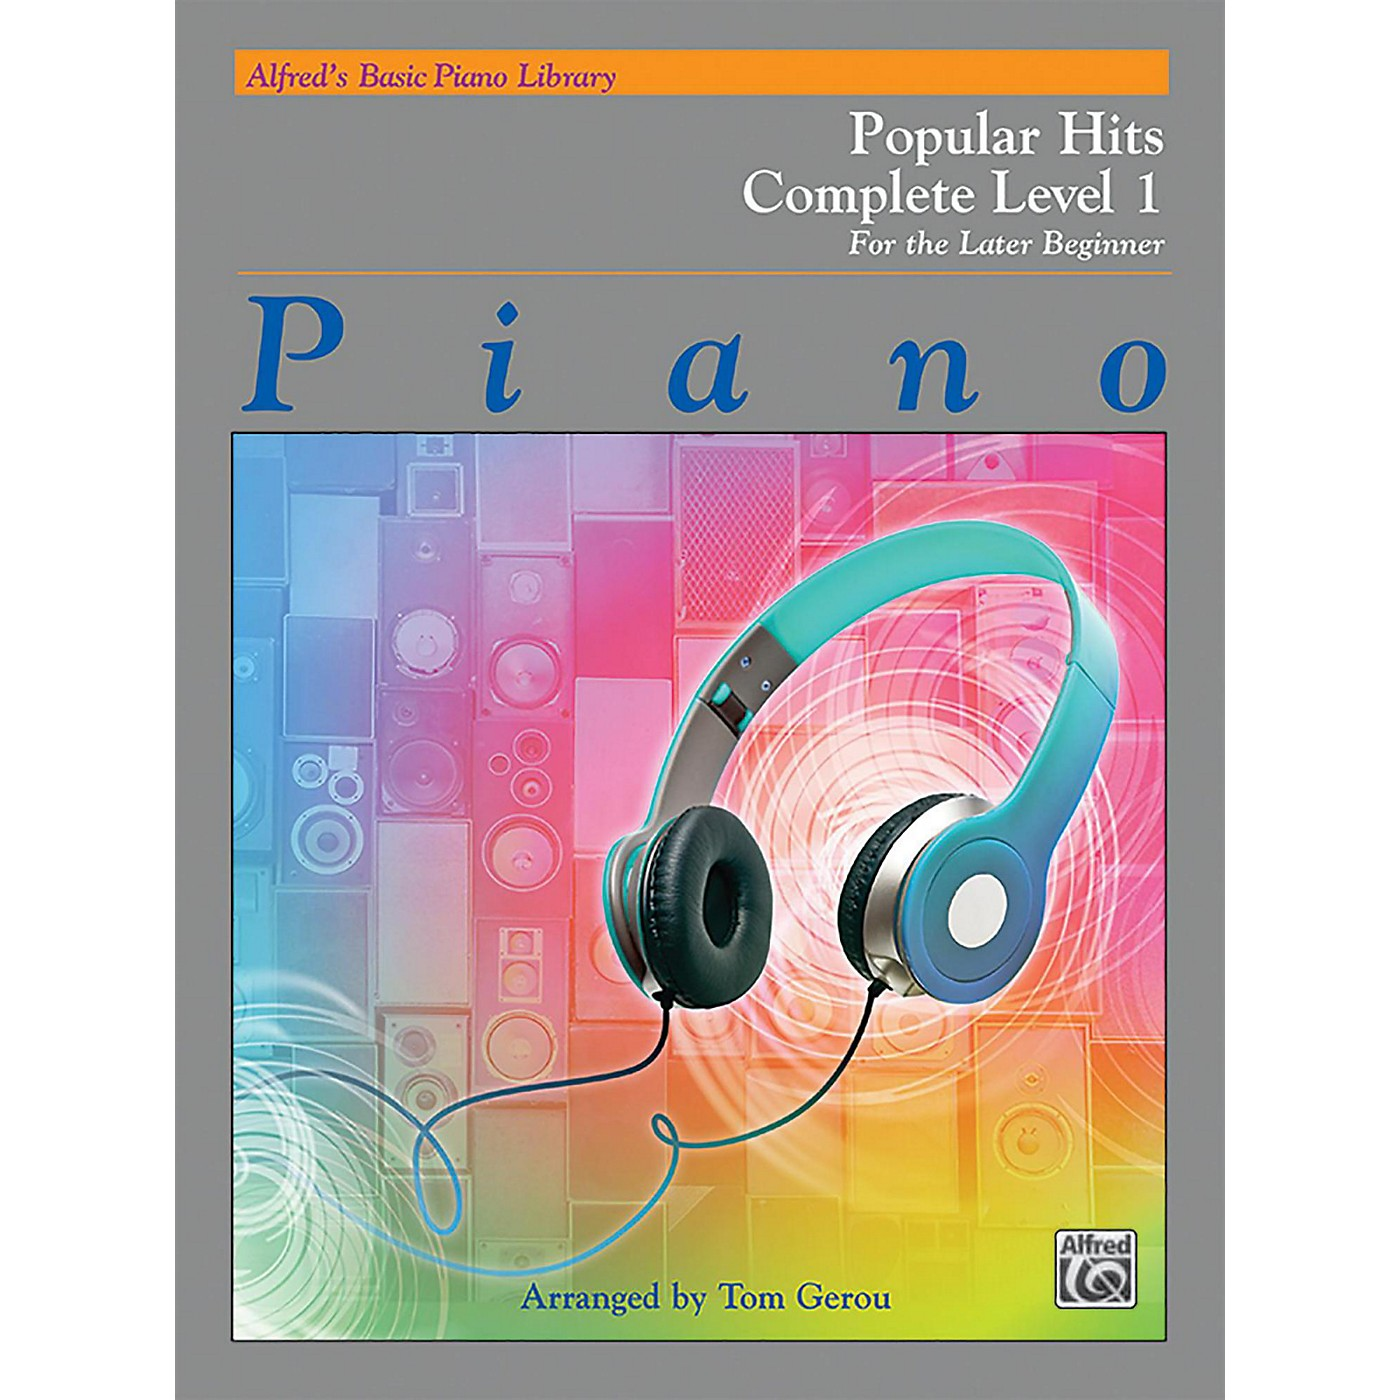 Alfred Alfred's Basic Piano Library: Popular Hits Complete Level 1 (1A/1B) thumbnail